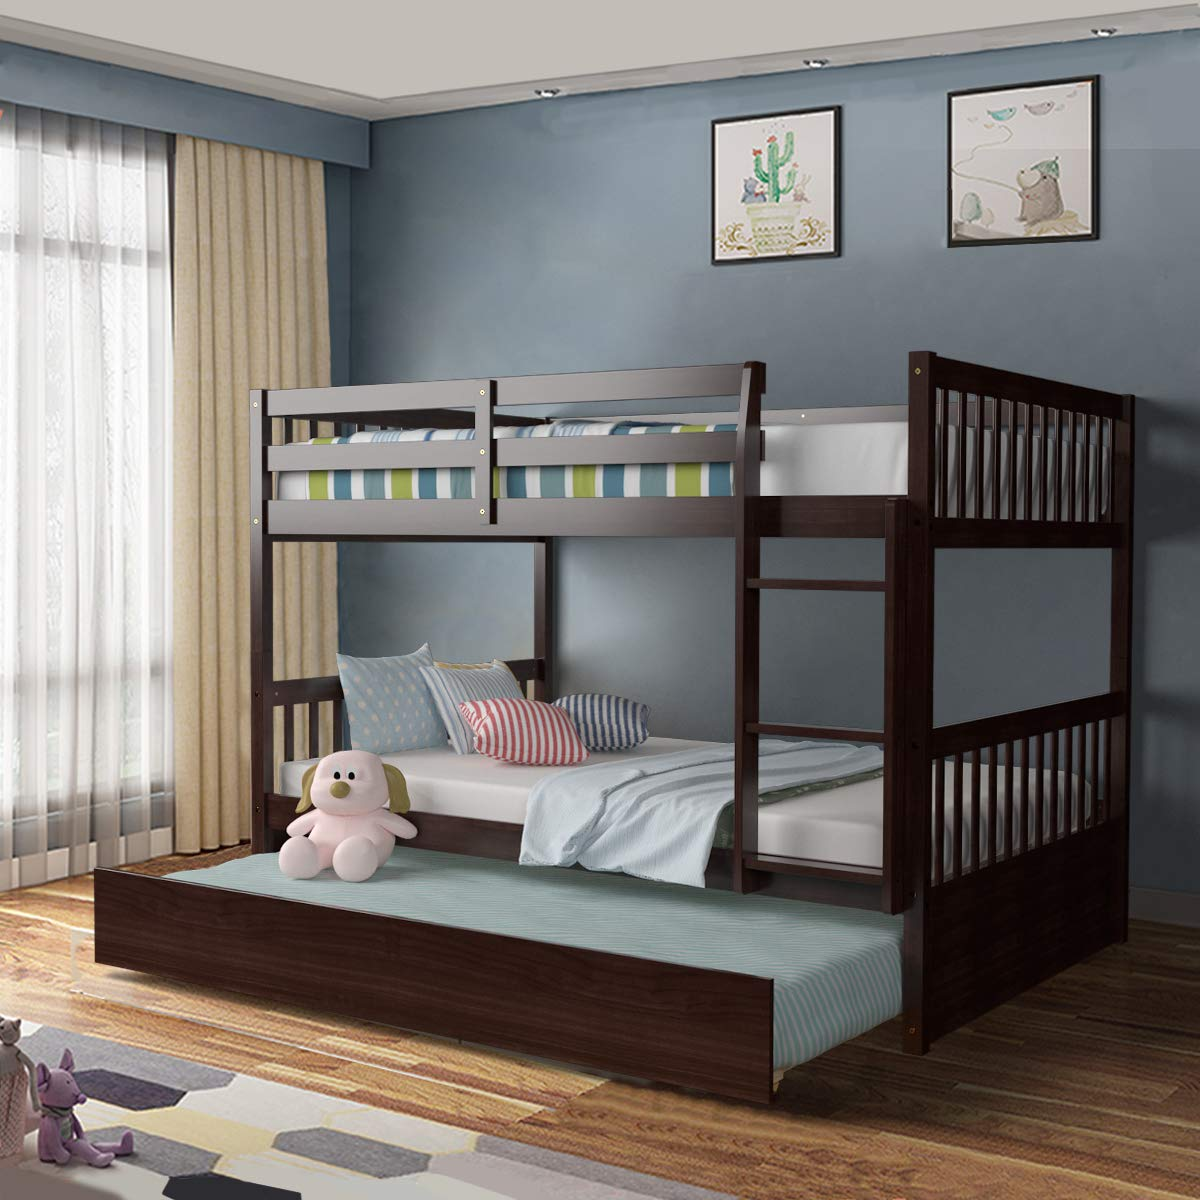 Giantex Bunk Bed with Trundle, Full Over Full Bunk Beds with Ladder, Solid Wood Trundle Bed with Rails, Safety High Guardr...